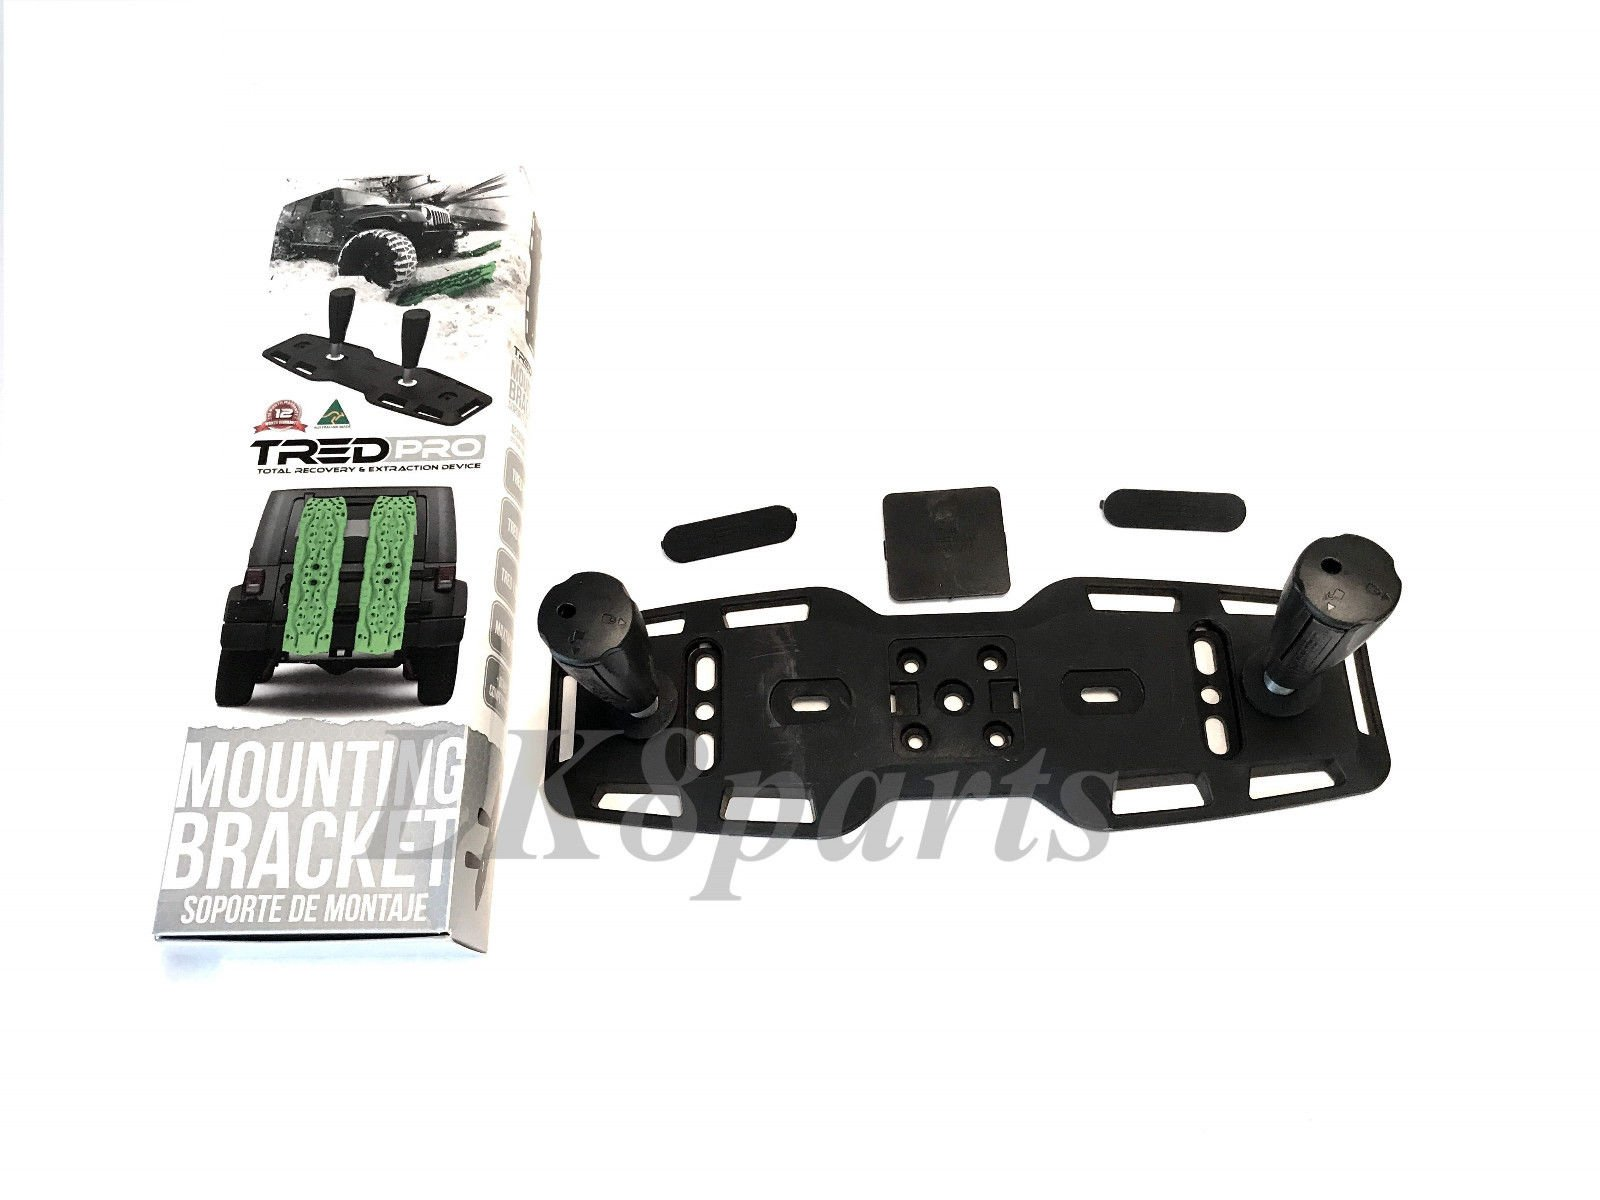 Proper Spec TRED PRO Mounting Bracket TRED PRO (4X4 Off-Road Vehicle Recovery) by Proper Spec